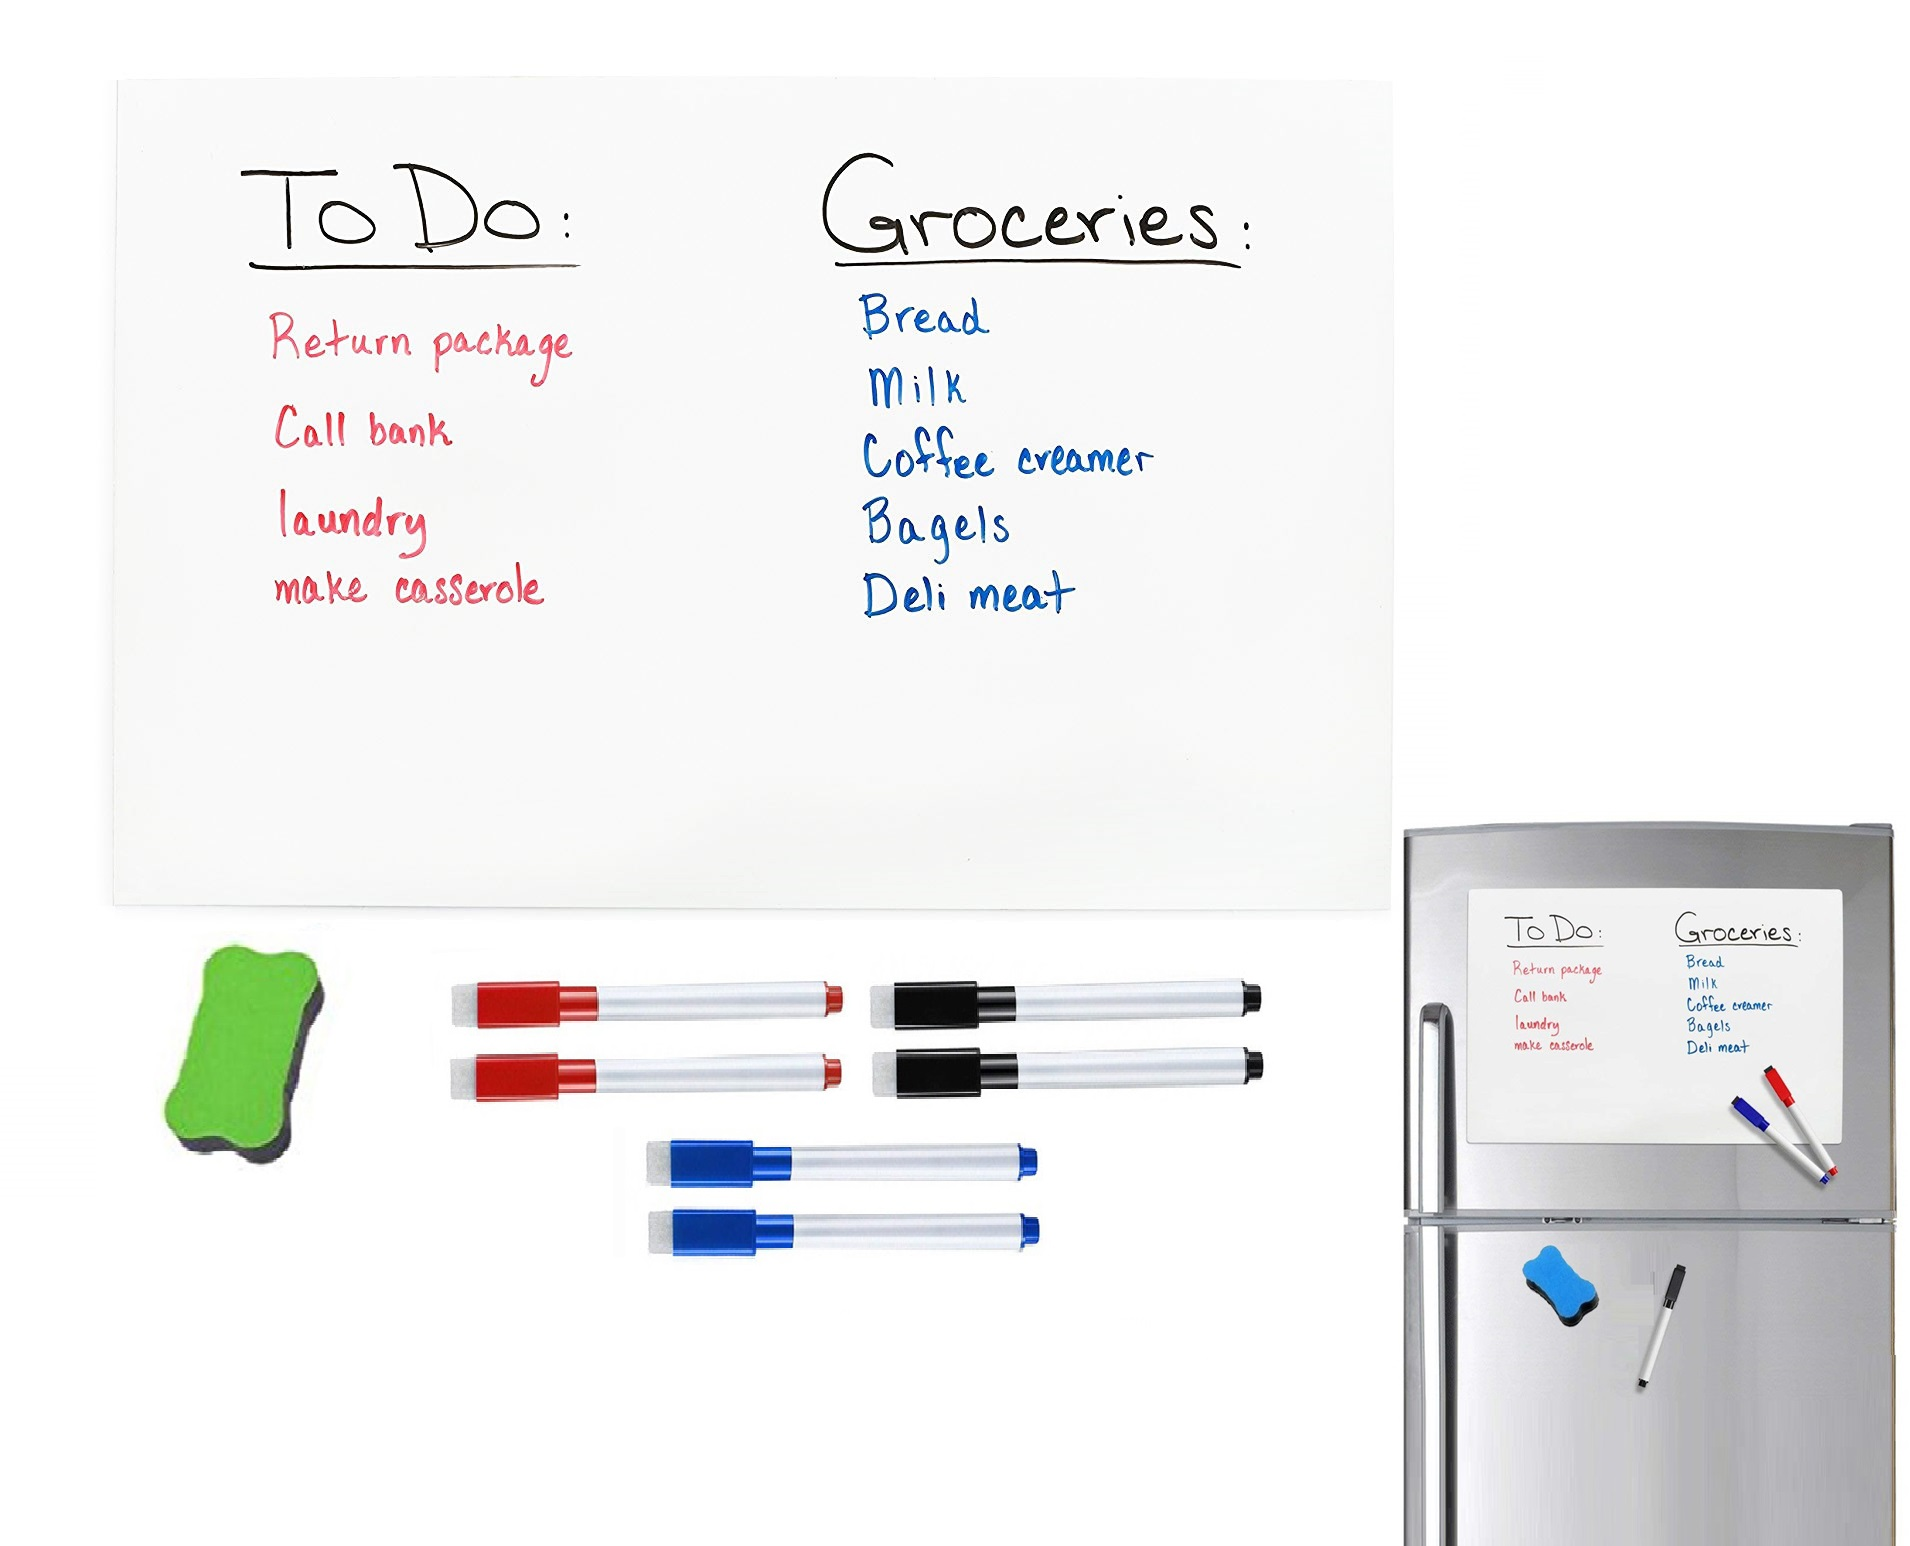 A3 Size 297mm X 420mm Fridge Reminder Magnetic Dry WIPE Whiteboard Sheet for Refrigerator Sticker Markers Eraser Big Note Board-in Fridge Magnets from Home & Garden